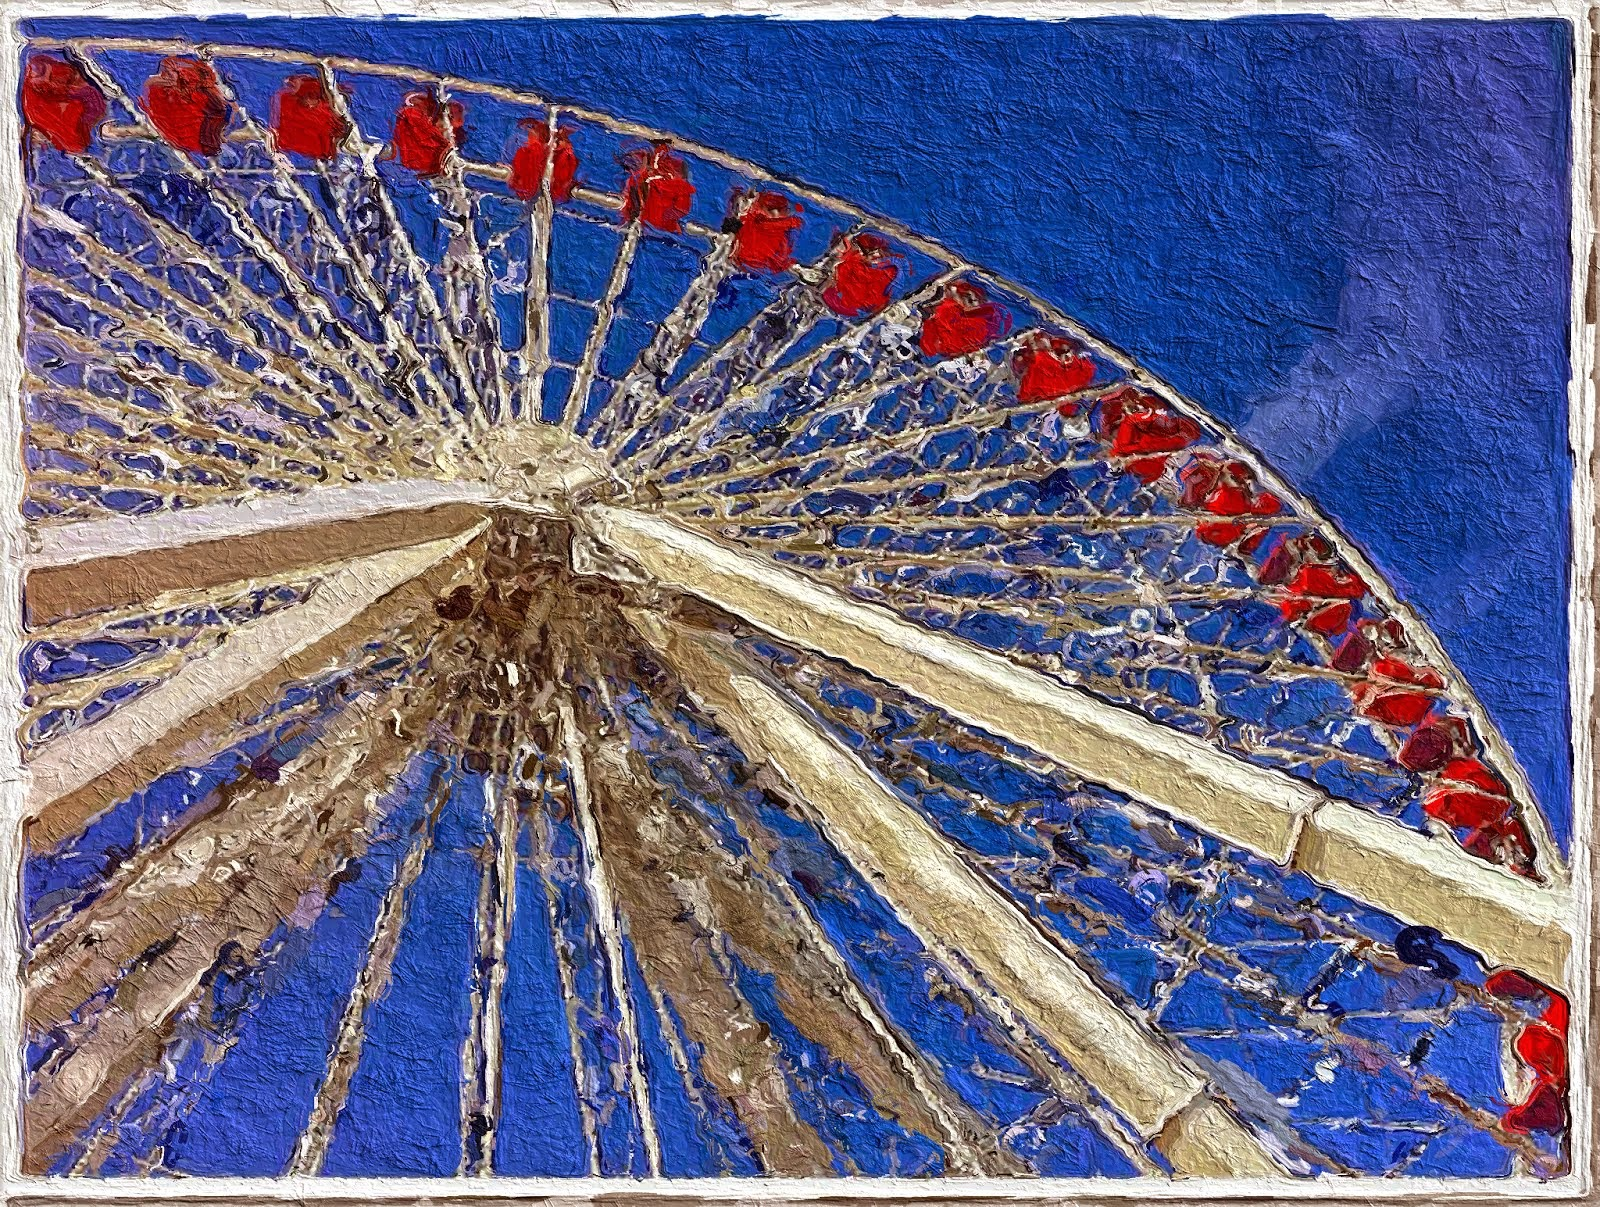 public domain paintings of a ferris wheel